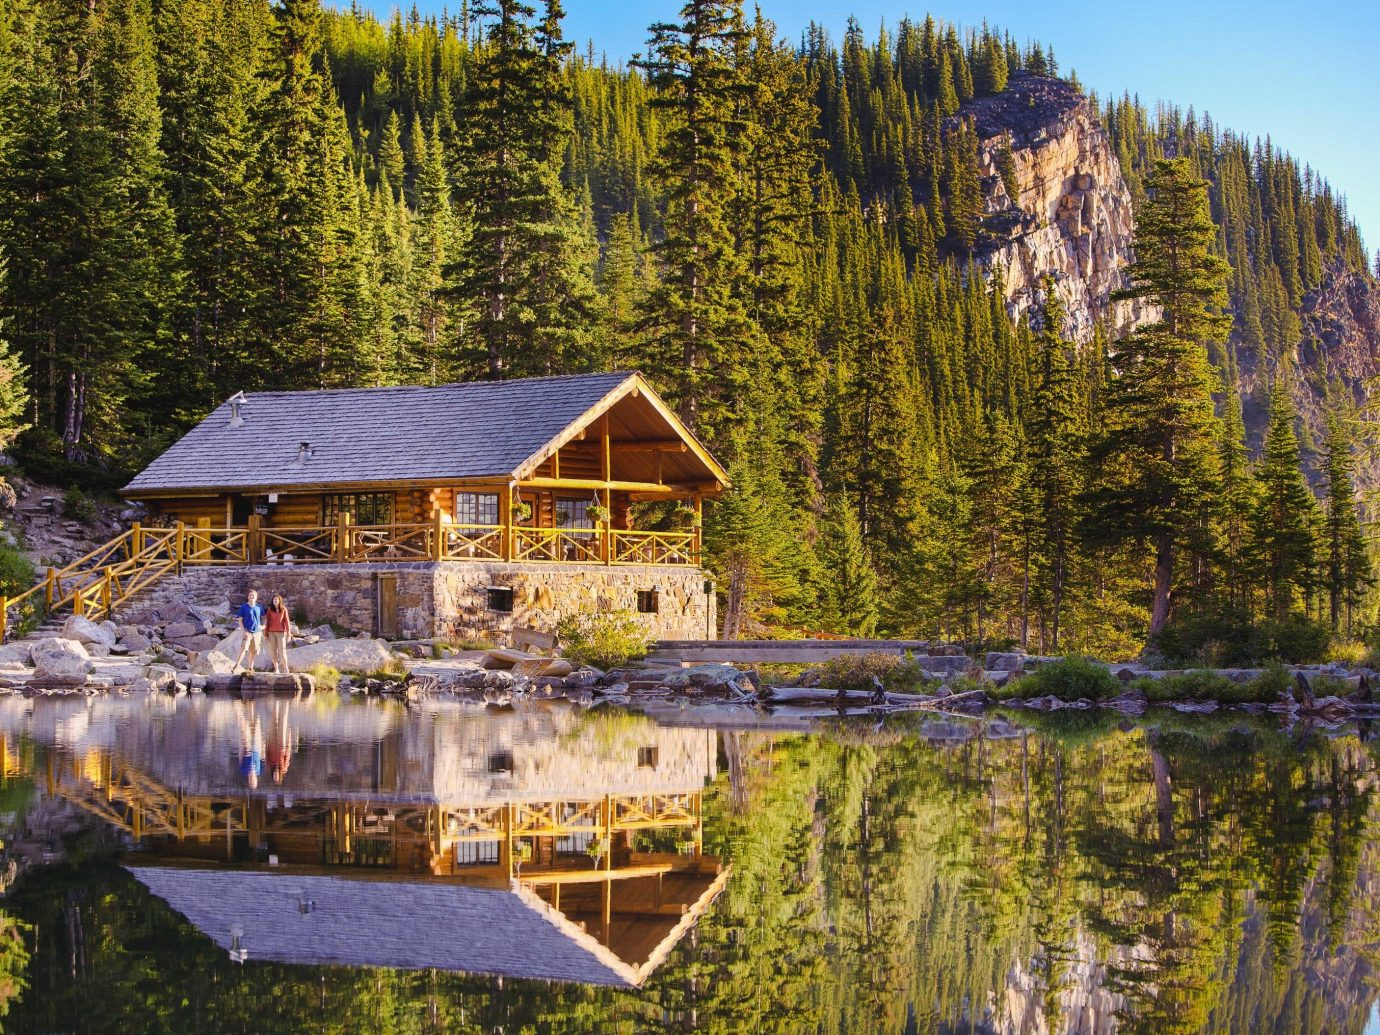 Alberta Canada Road Trips tree outdoor reflection Nature pond water wilderness Lake home cottage plant wood real estate mountain Forest national park landscape tourist attraction estate mount scenery sky hut reservoir house log cabin wooded area surrounded